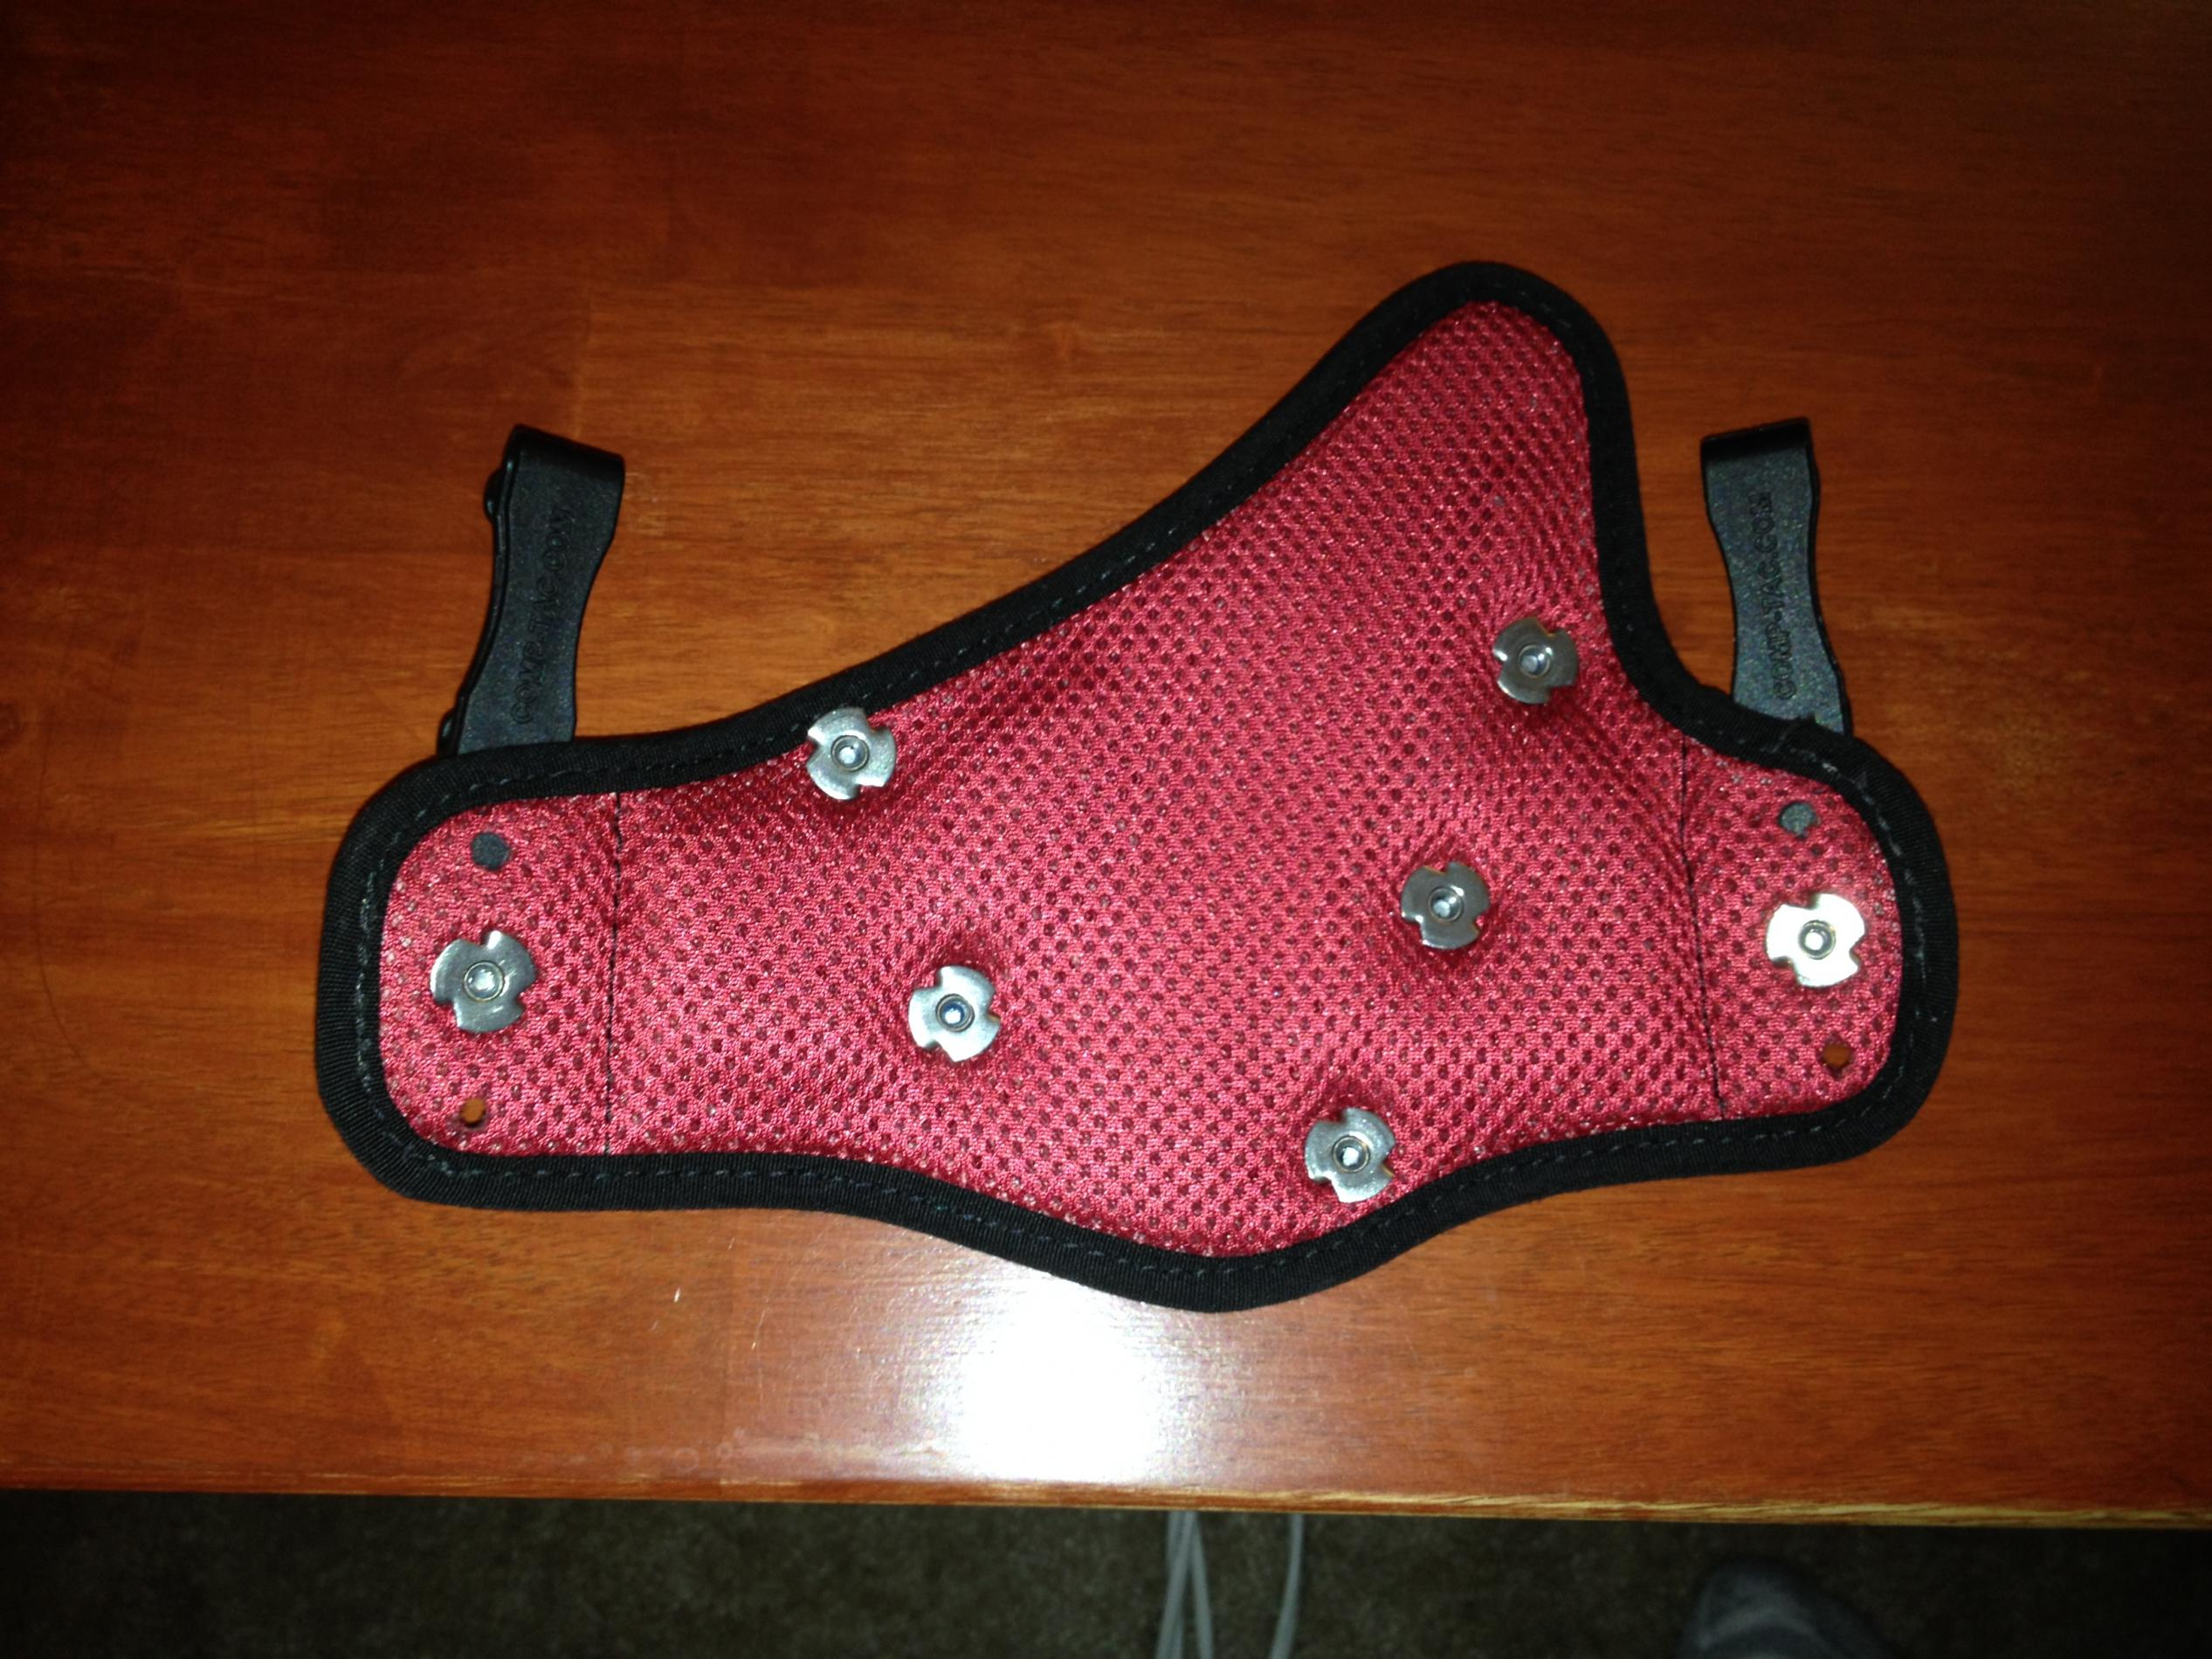 Steathgear USA holster initial impressions.-img_1259.jpg